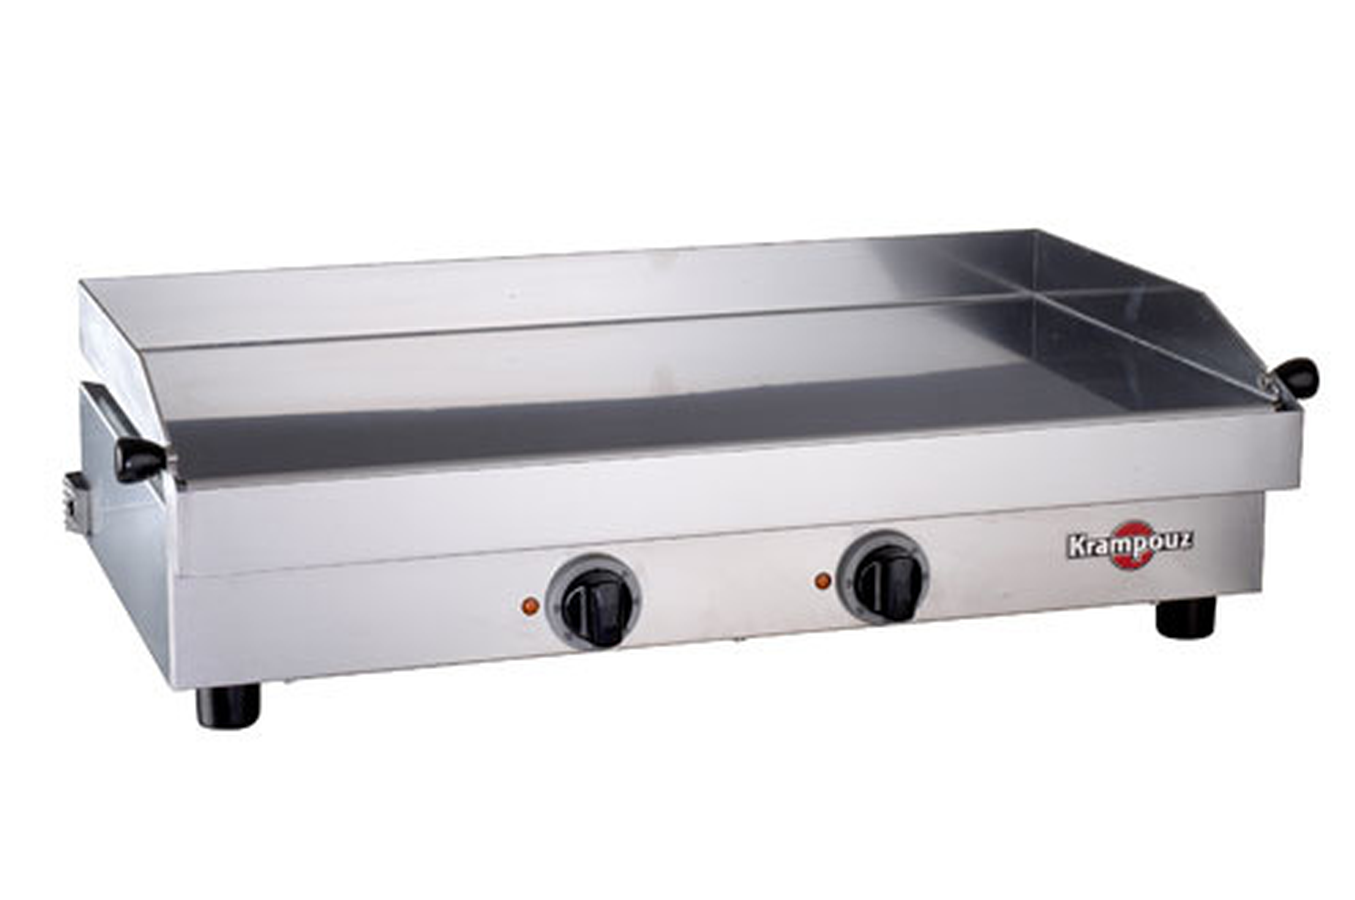 Plancha pro krampouz gecia4 gecia4 2088070 darty - Thermometre de cuisson darty ...